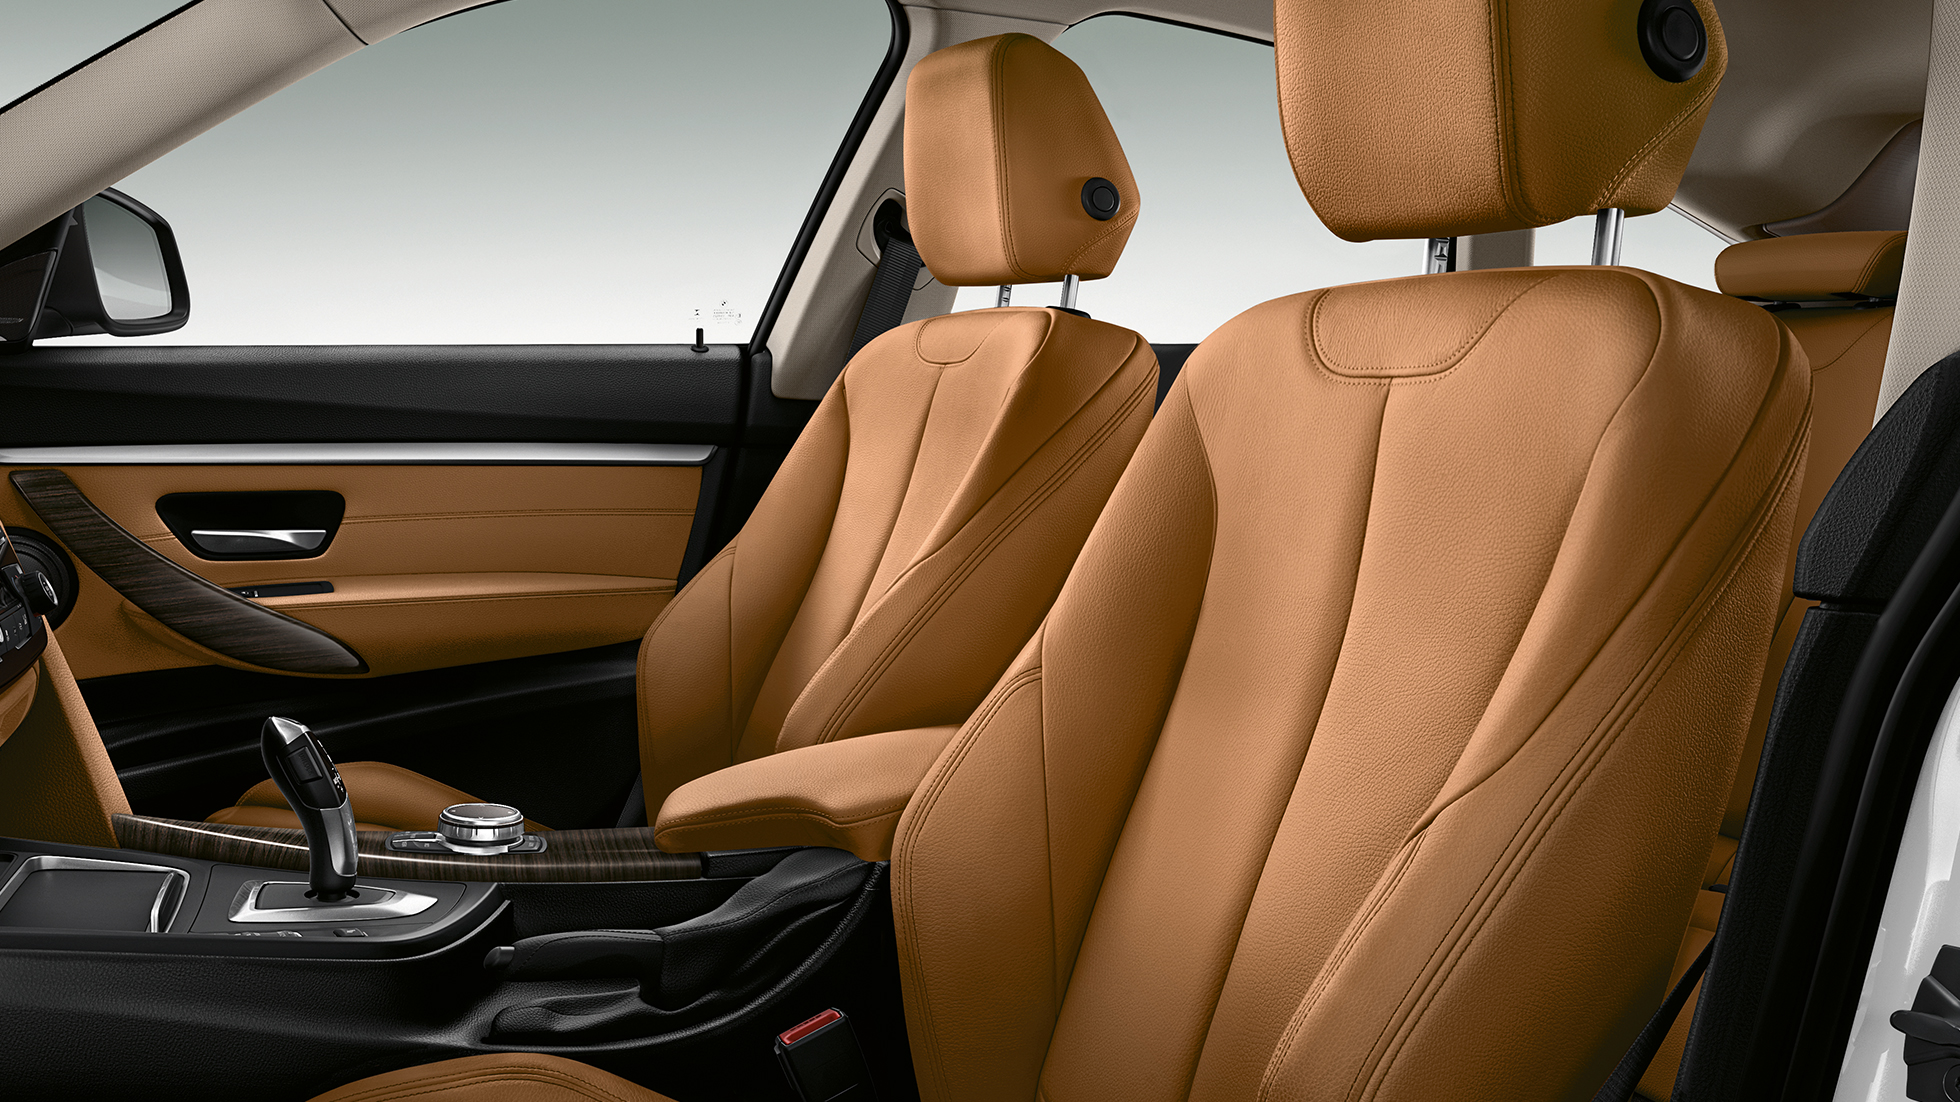 BMW 3 Series Gran Turismo, Model Luxury Line seats